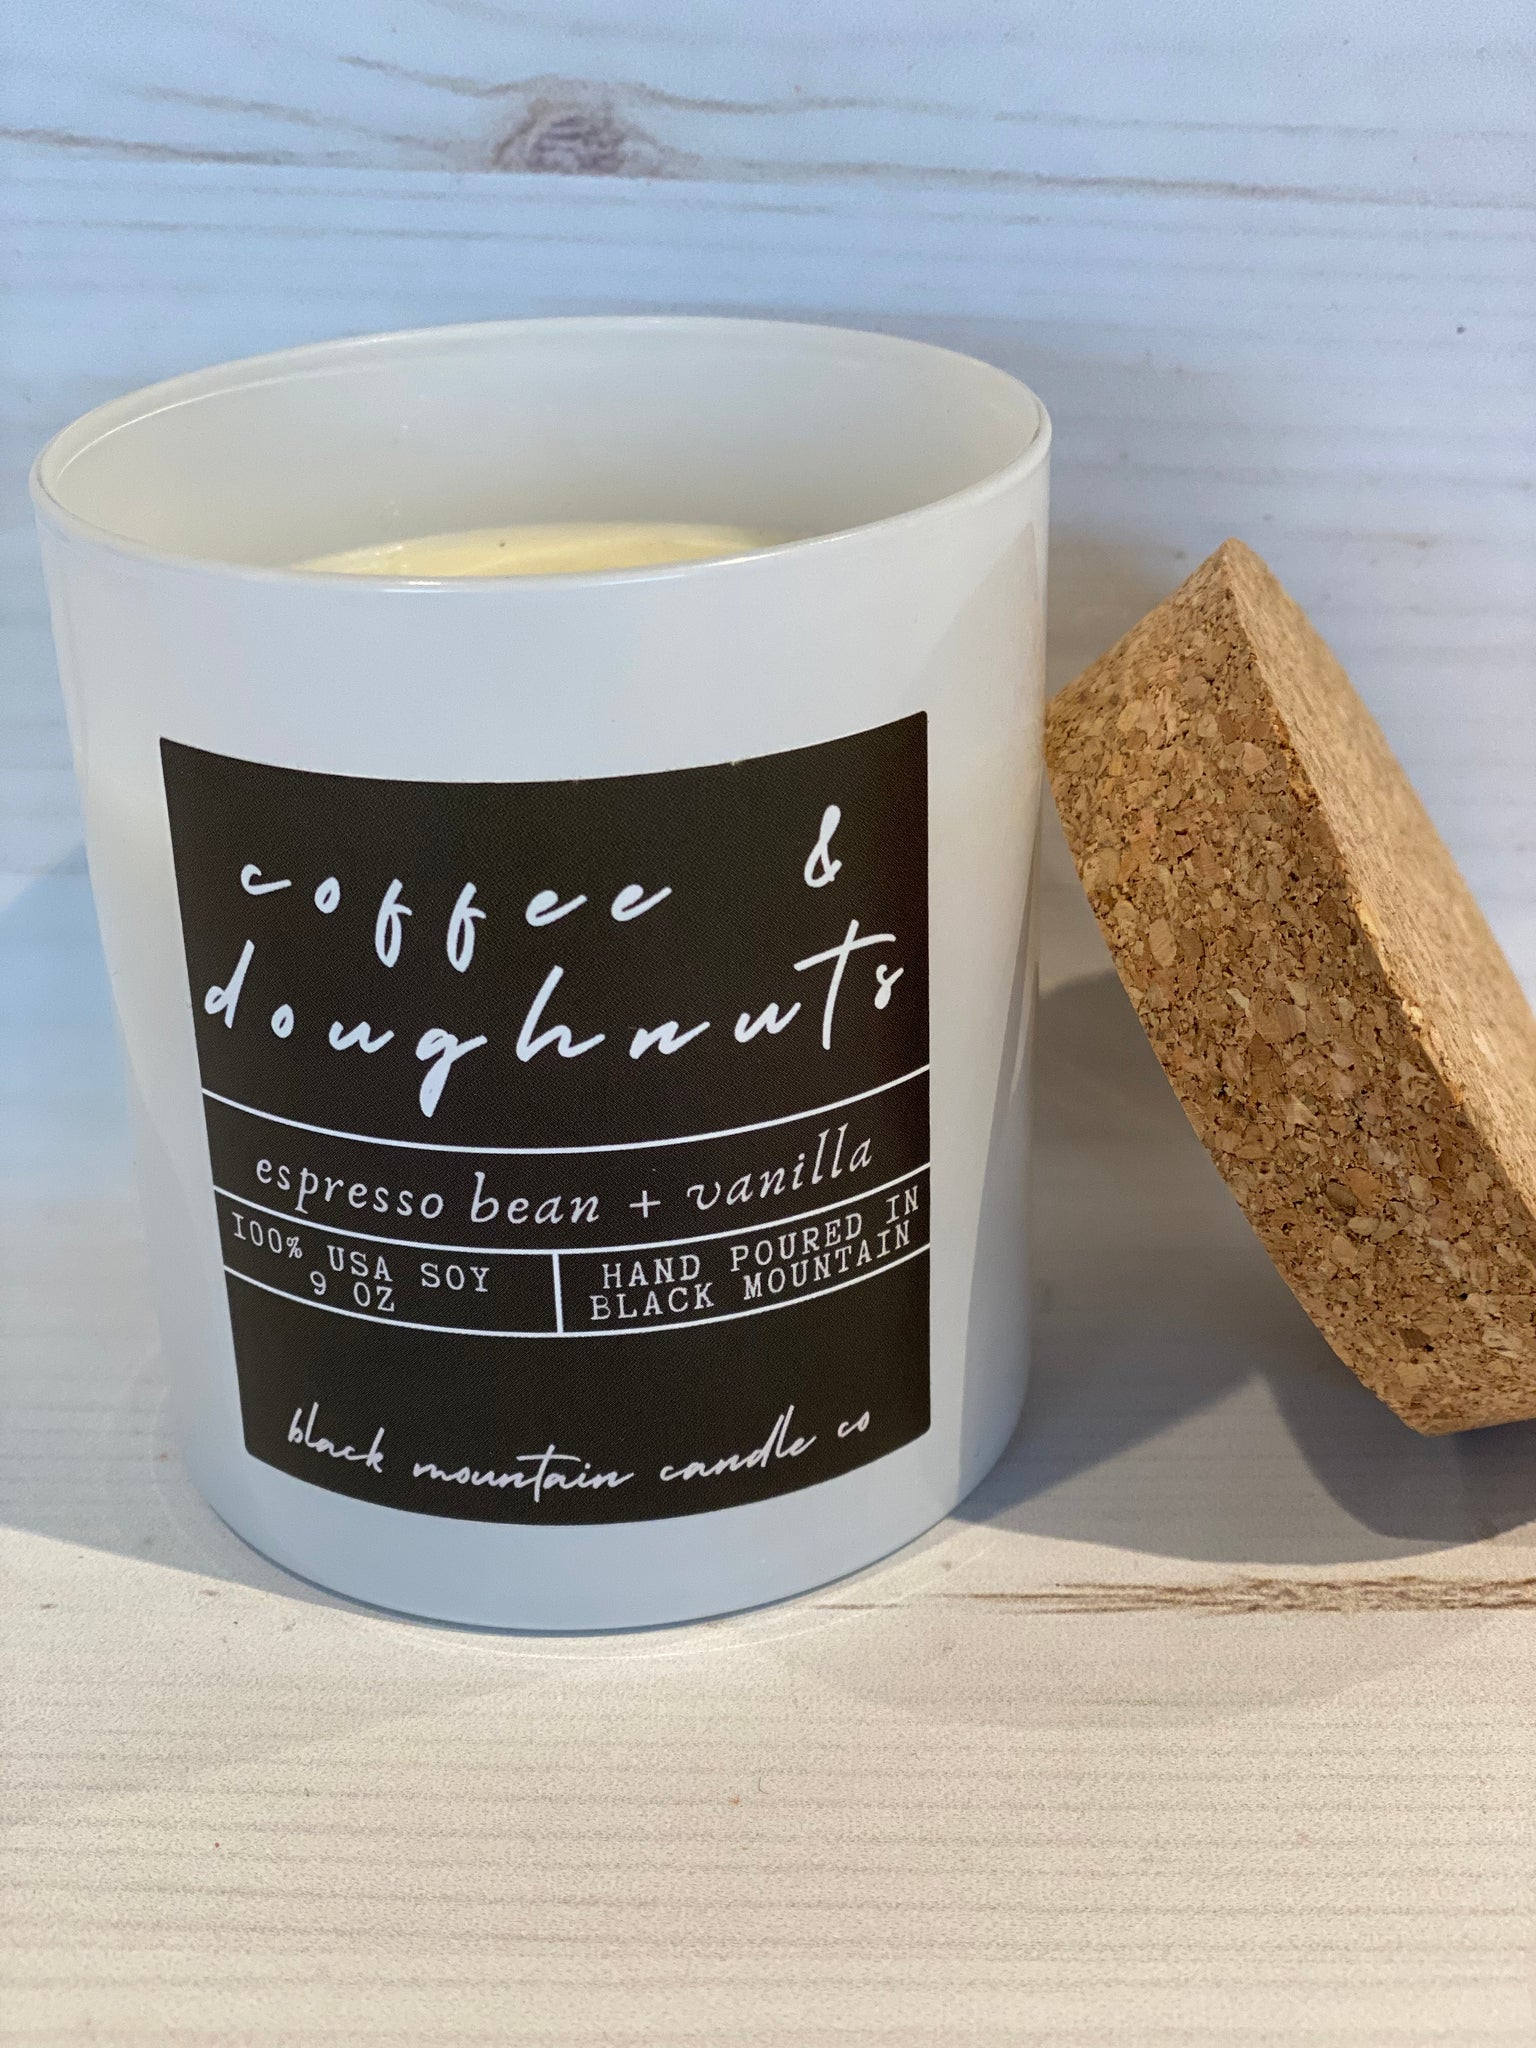 Black Mountain Candle Co